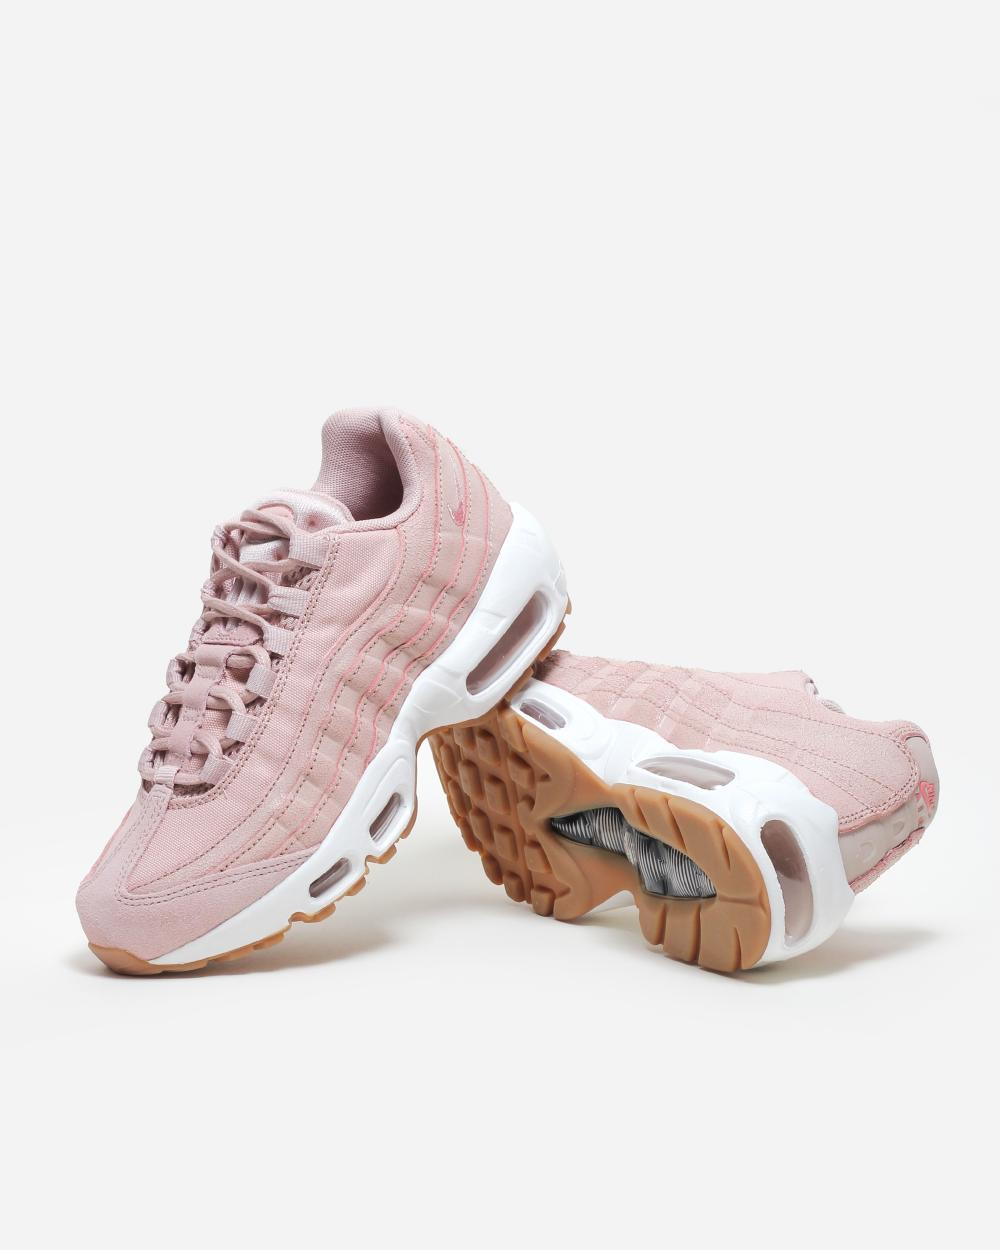 Nike Air max 95 junior pink, white and grey. In Depop